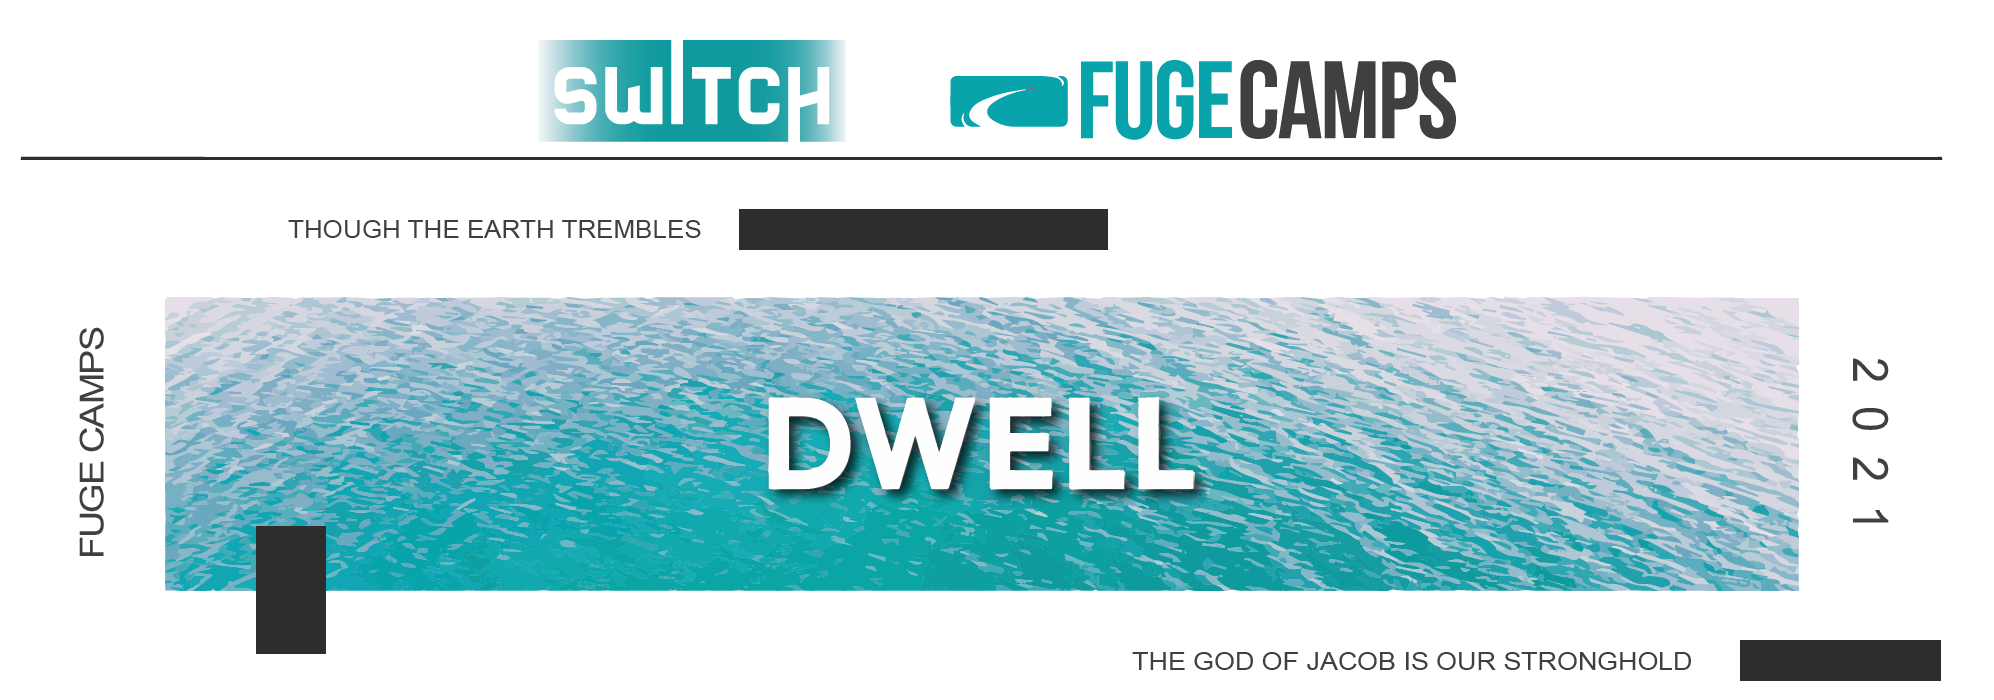 Dwell Header for Registration-01